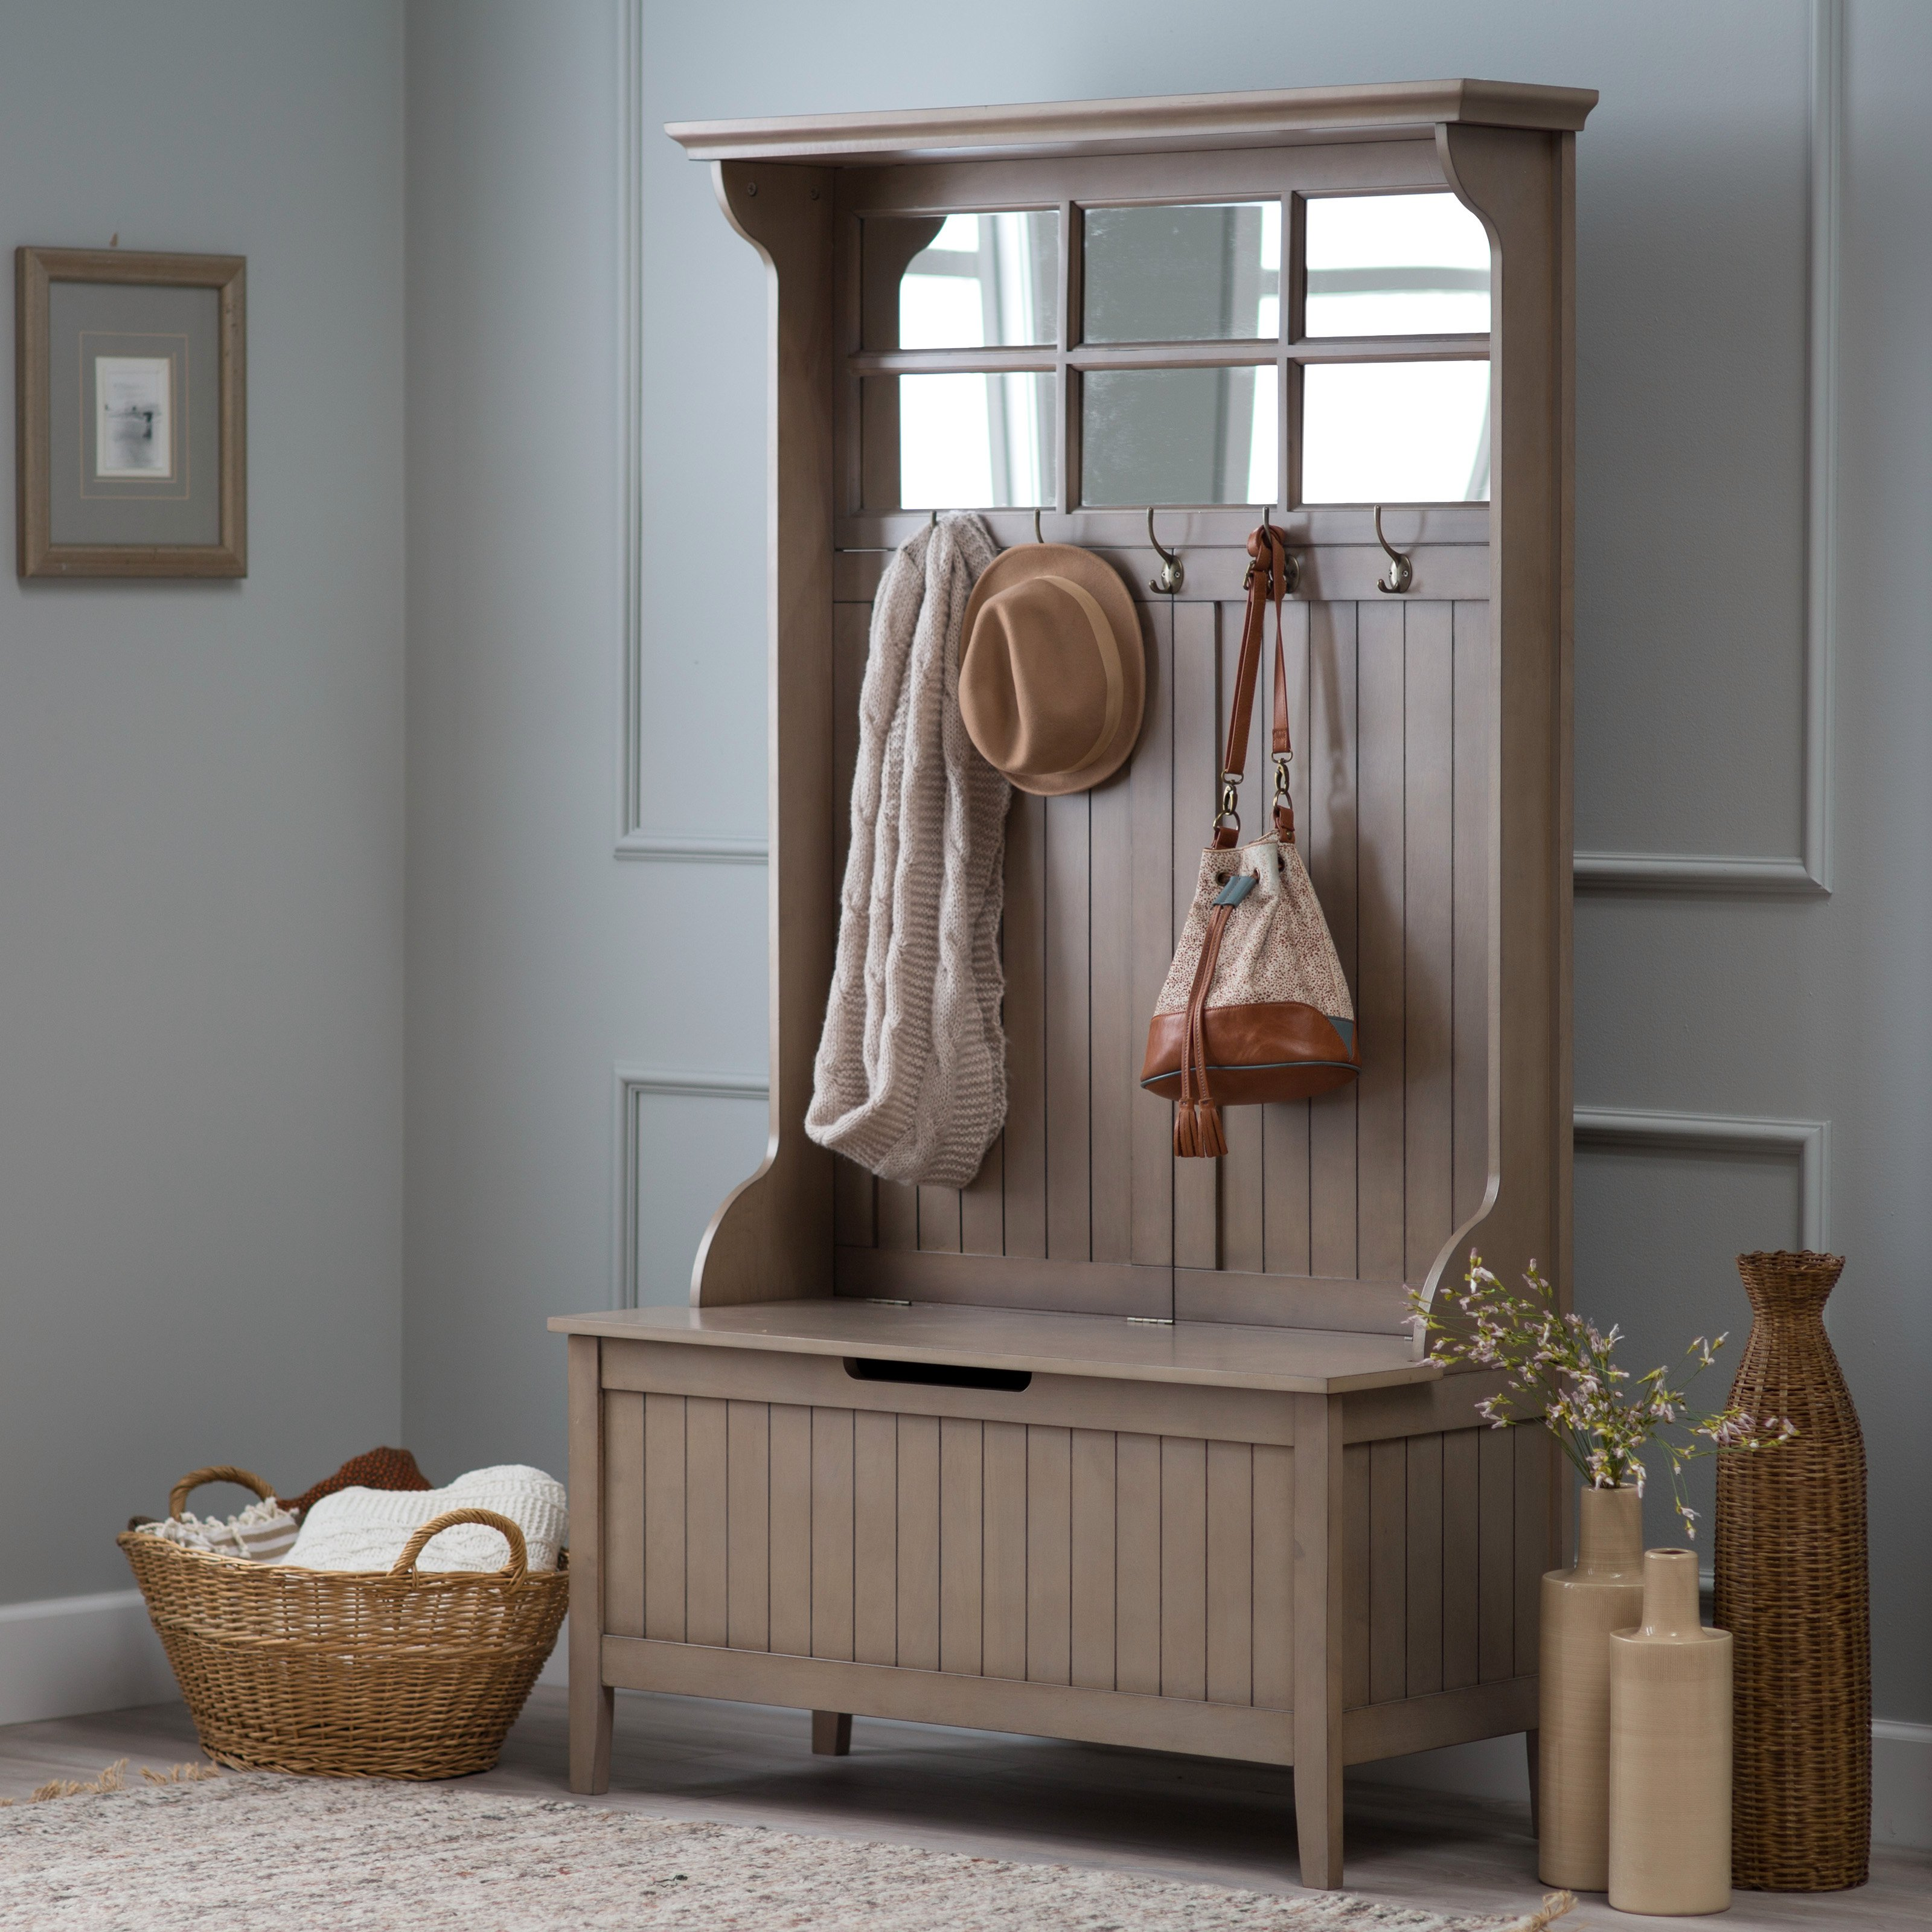 Belham Living Richland Hall Tree with Storage Bench - Driftwood Gray -  Walmart.com